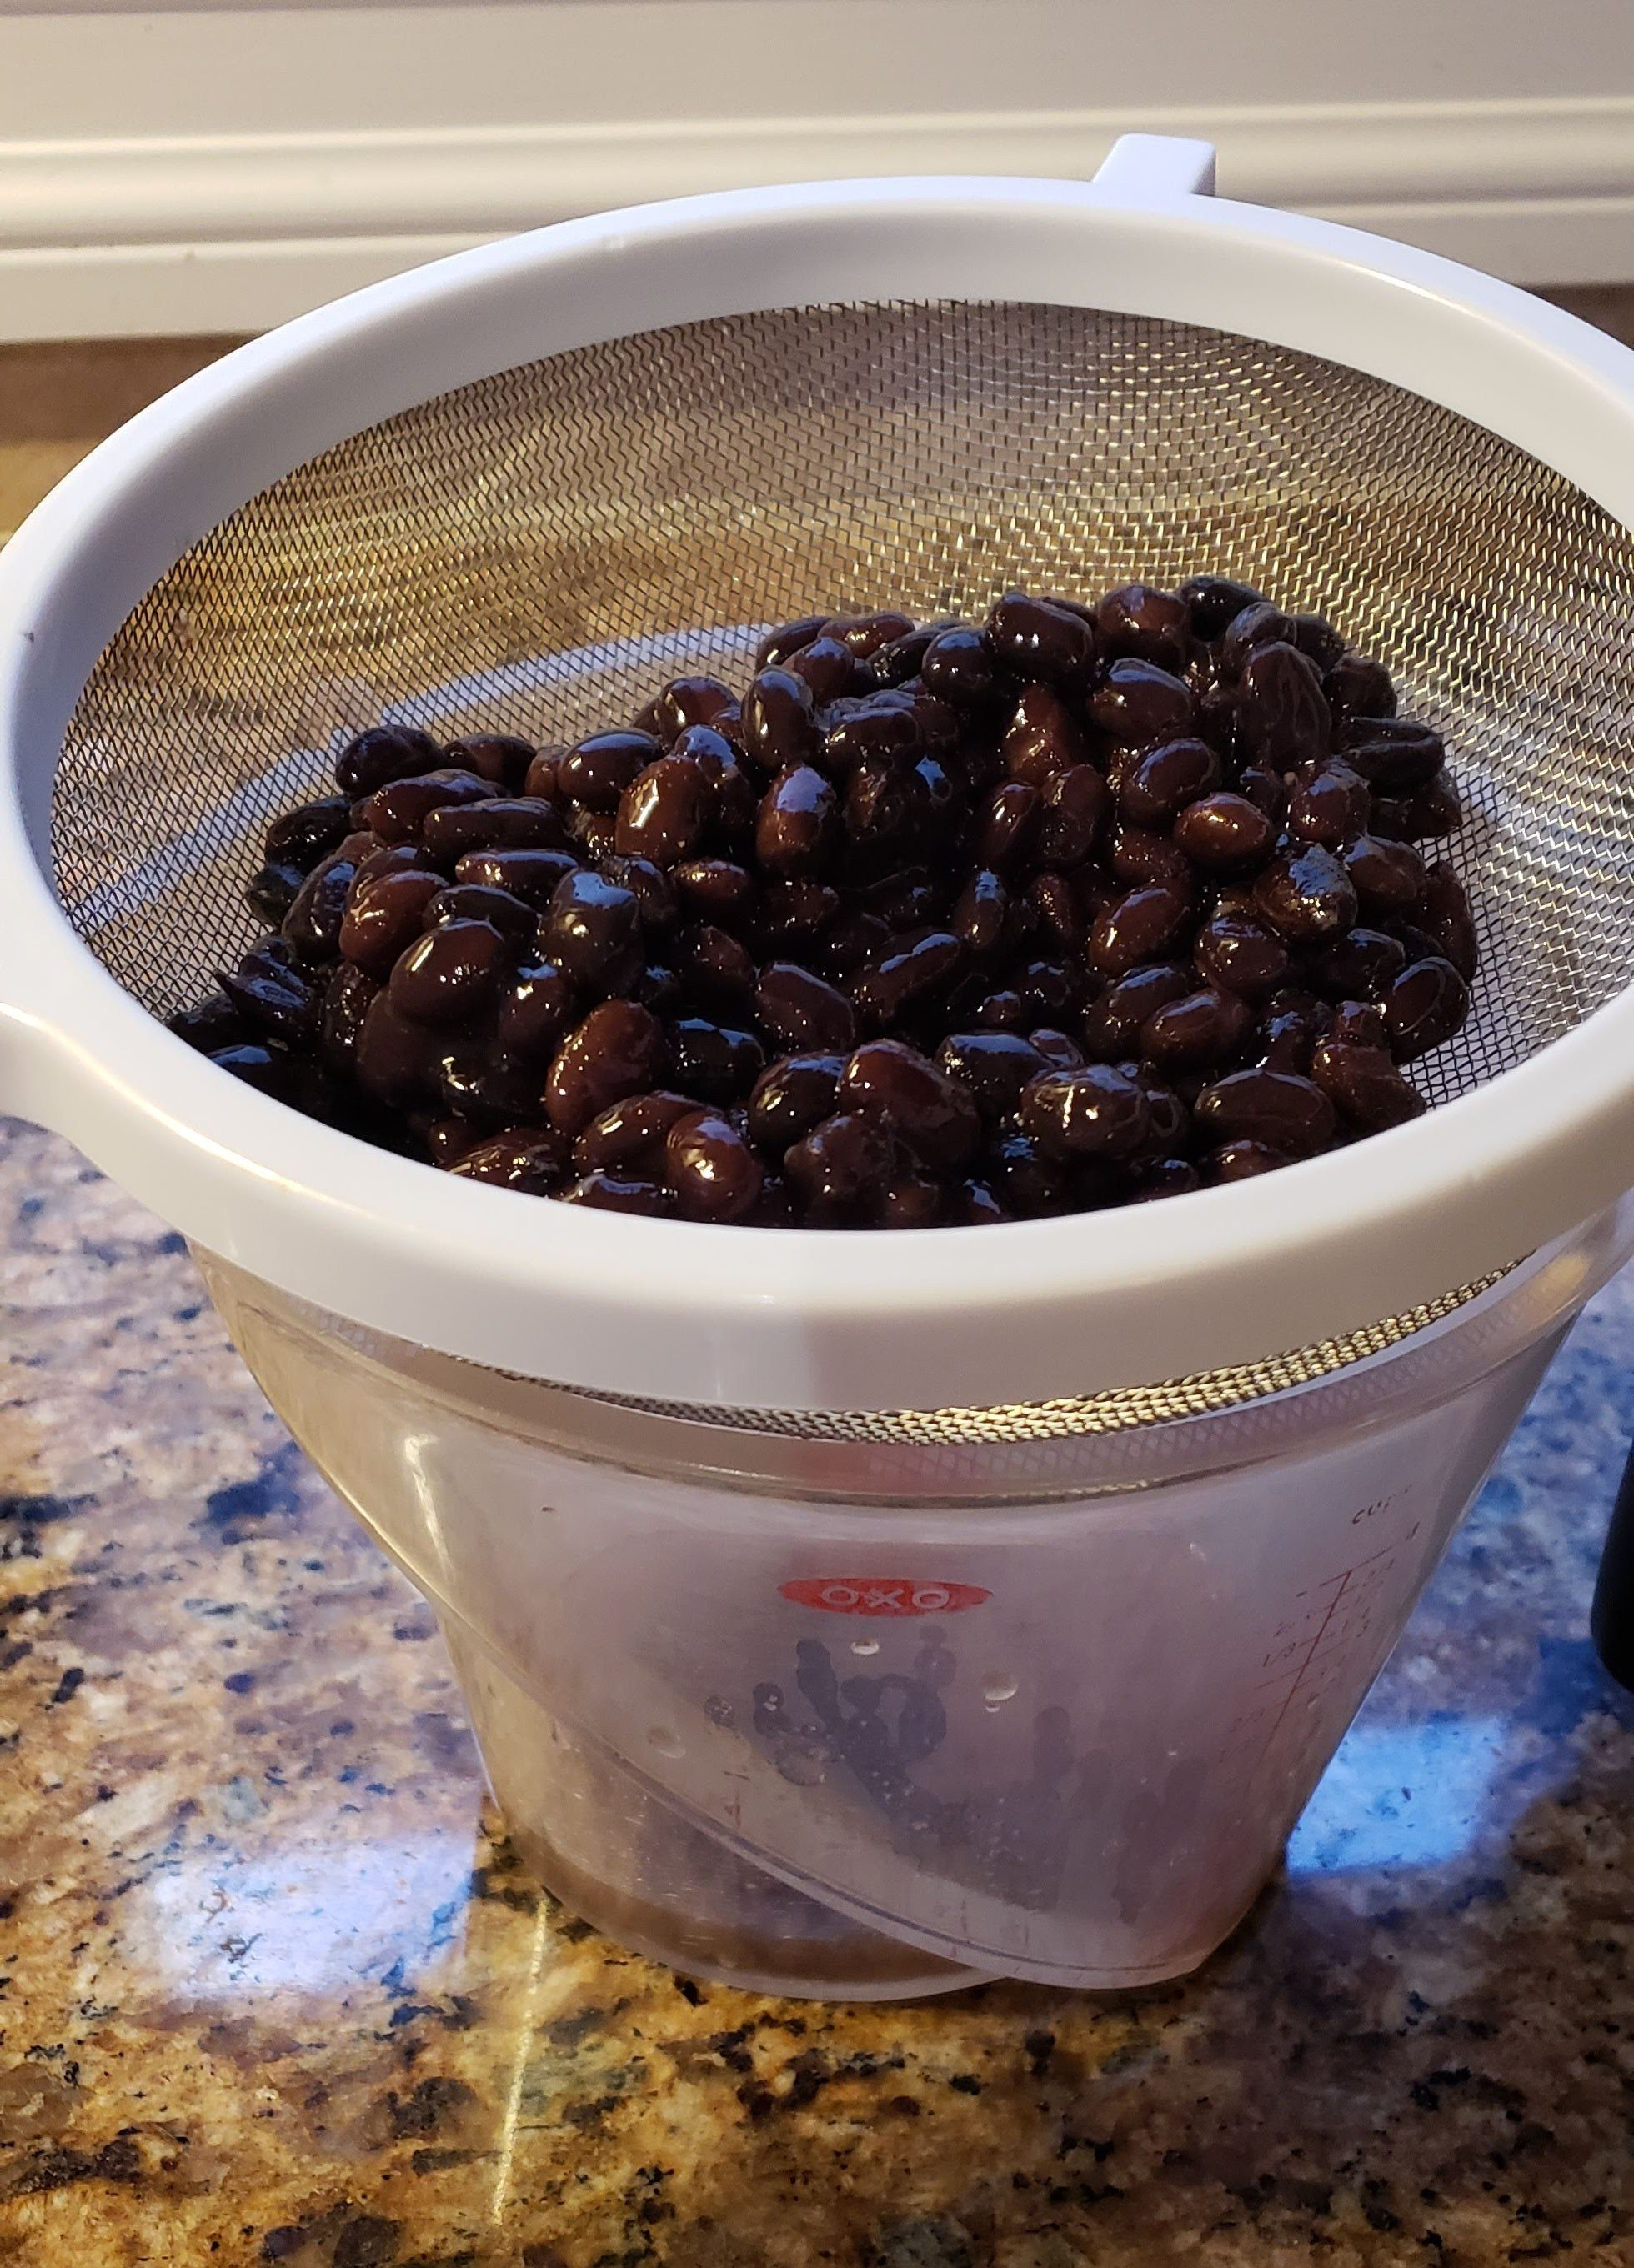 straining black beans for moros